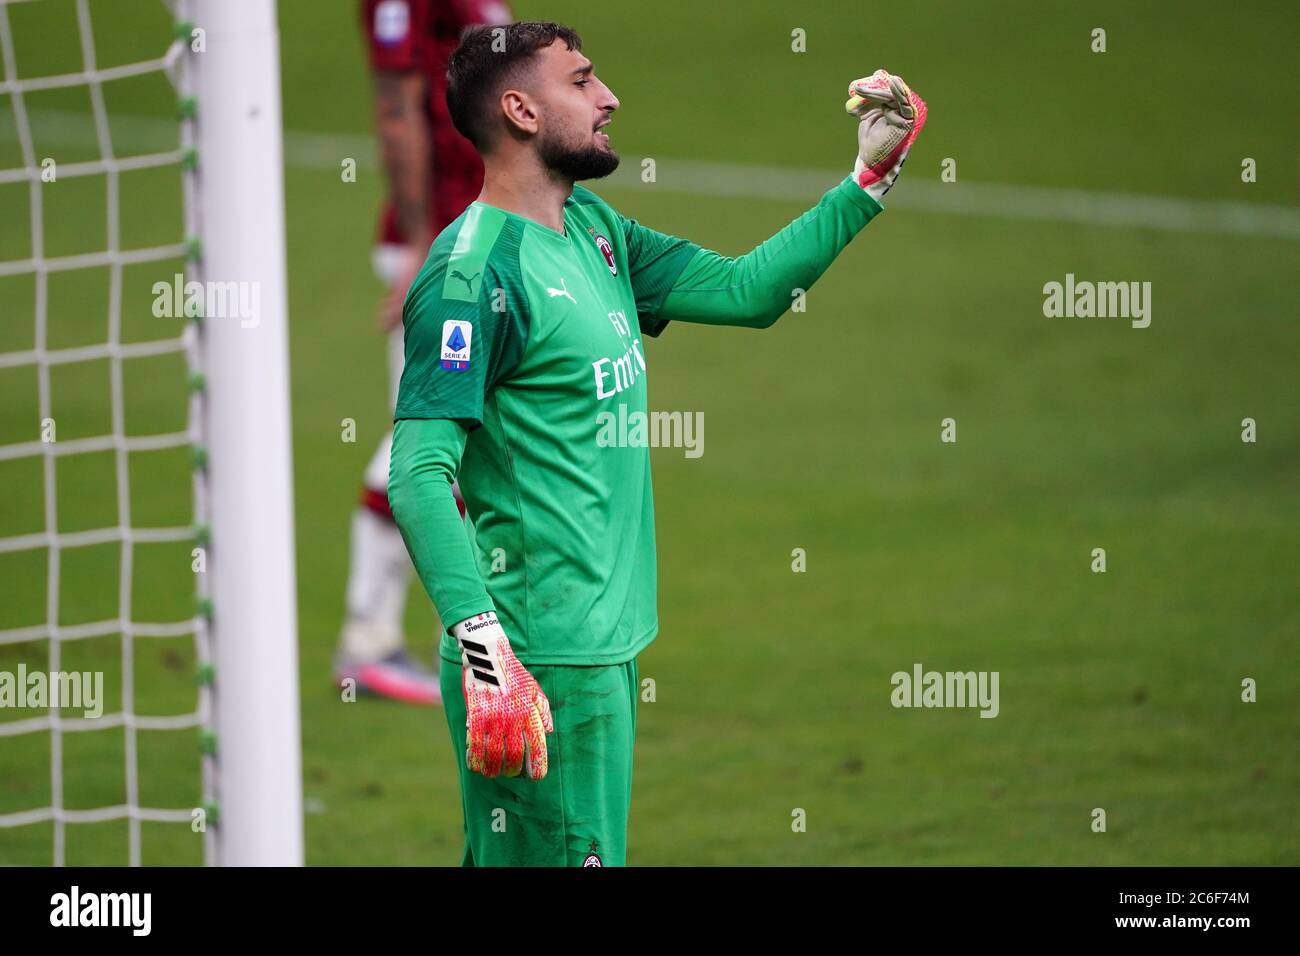 Milano Italy 07th July 2020 Italian Serie A Gianluigi Donnarumma Of Ac Milan In Action During The Serie A Match Between Ac Milan And Juventus Fc Stock Photo Alamy